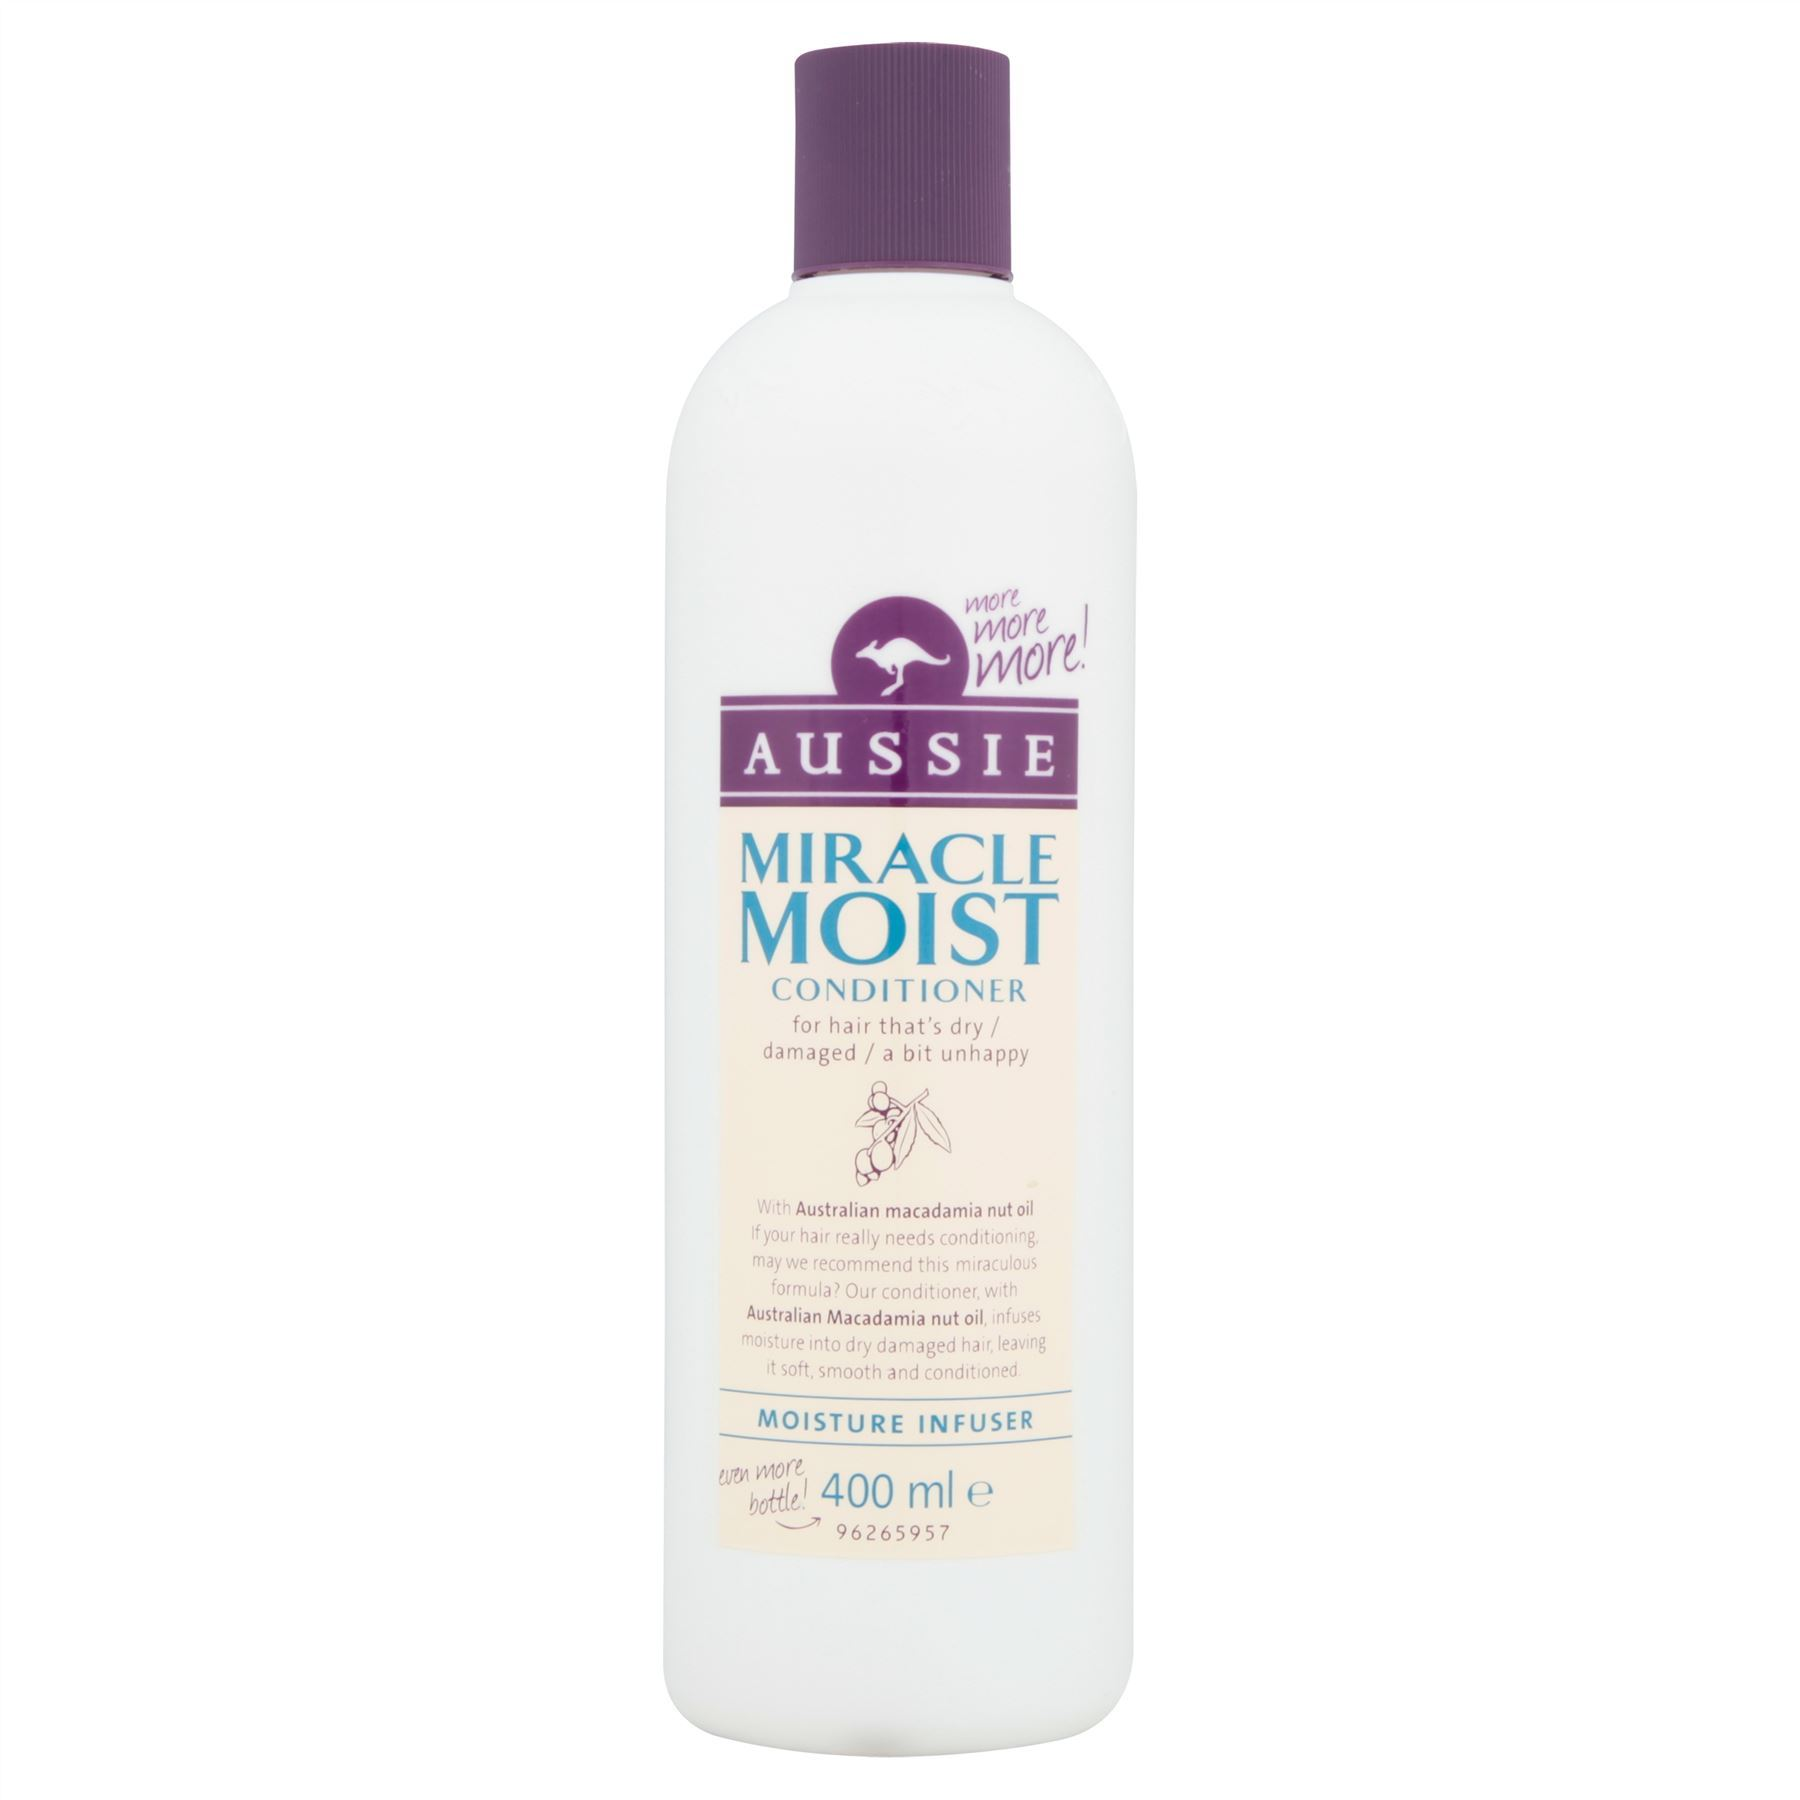 842c8f8b541 Details about 6 Packs of Aussie Miracle Moist Conditioner 400ml